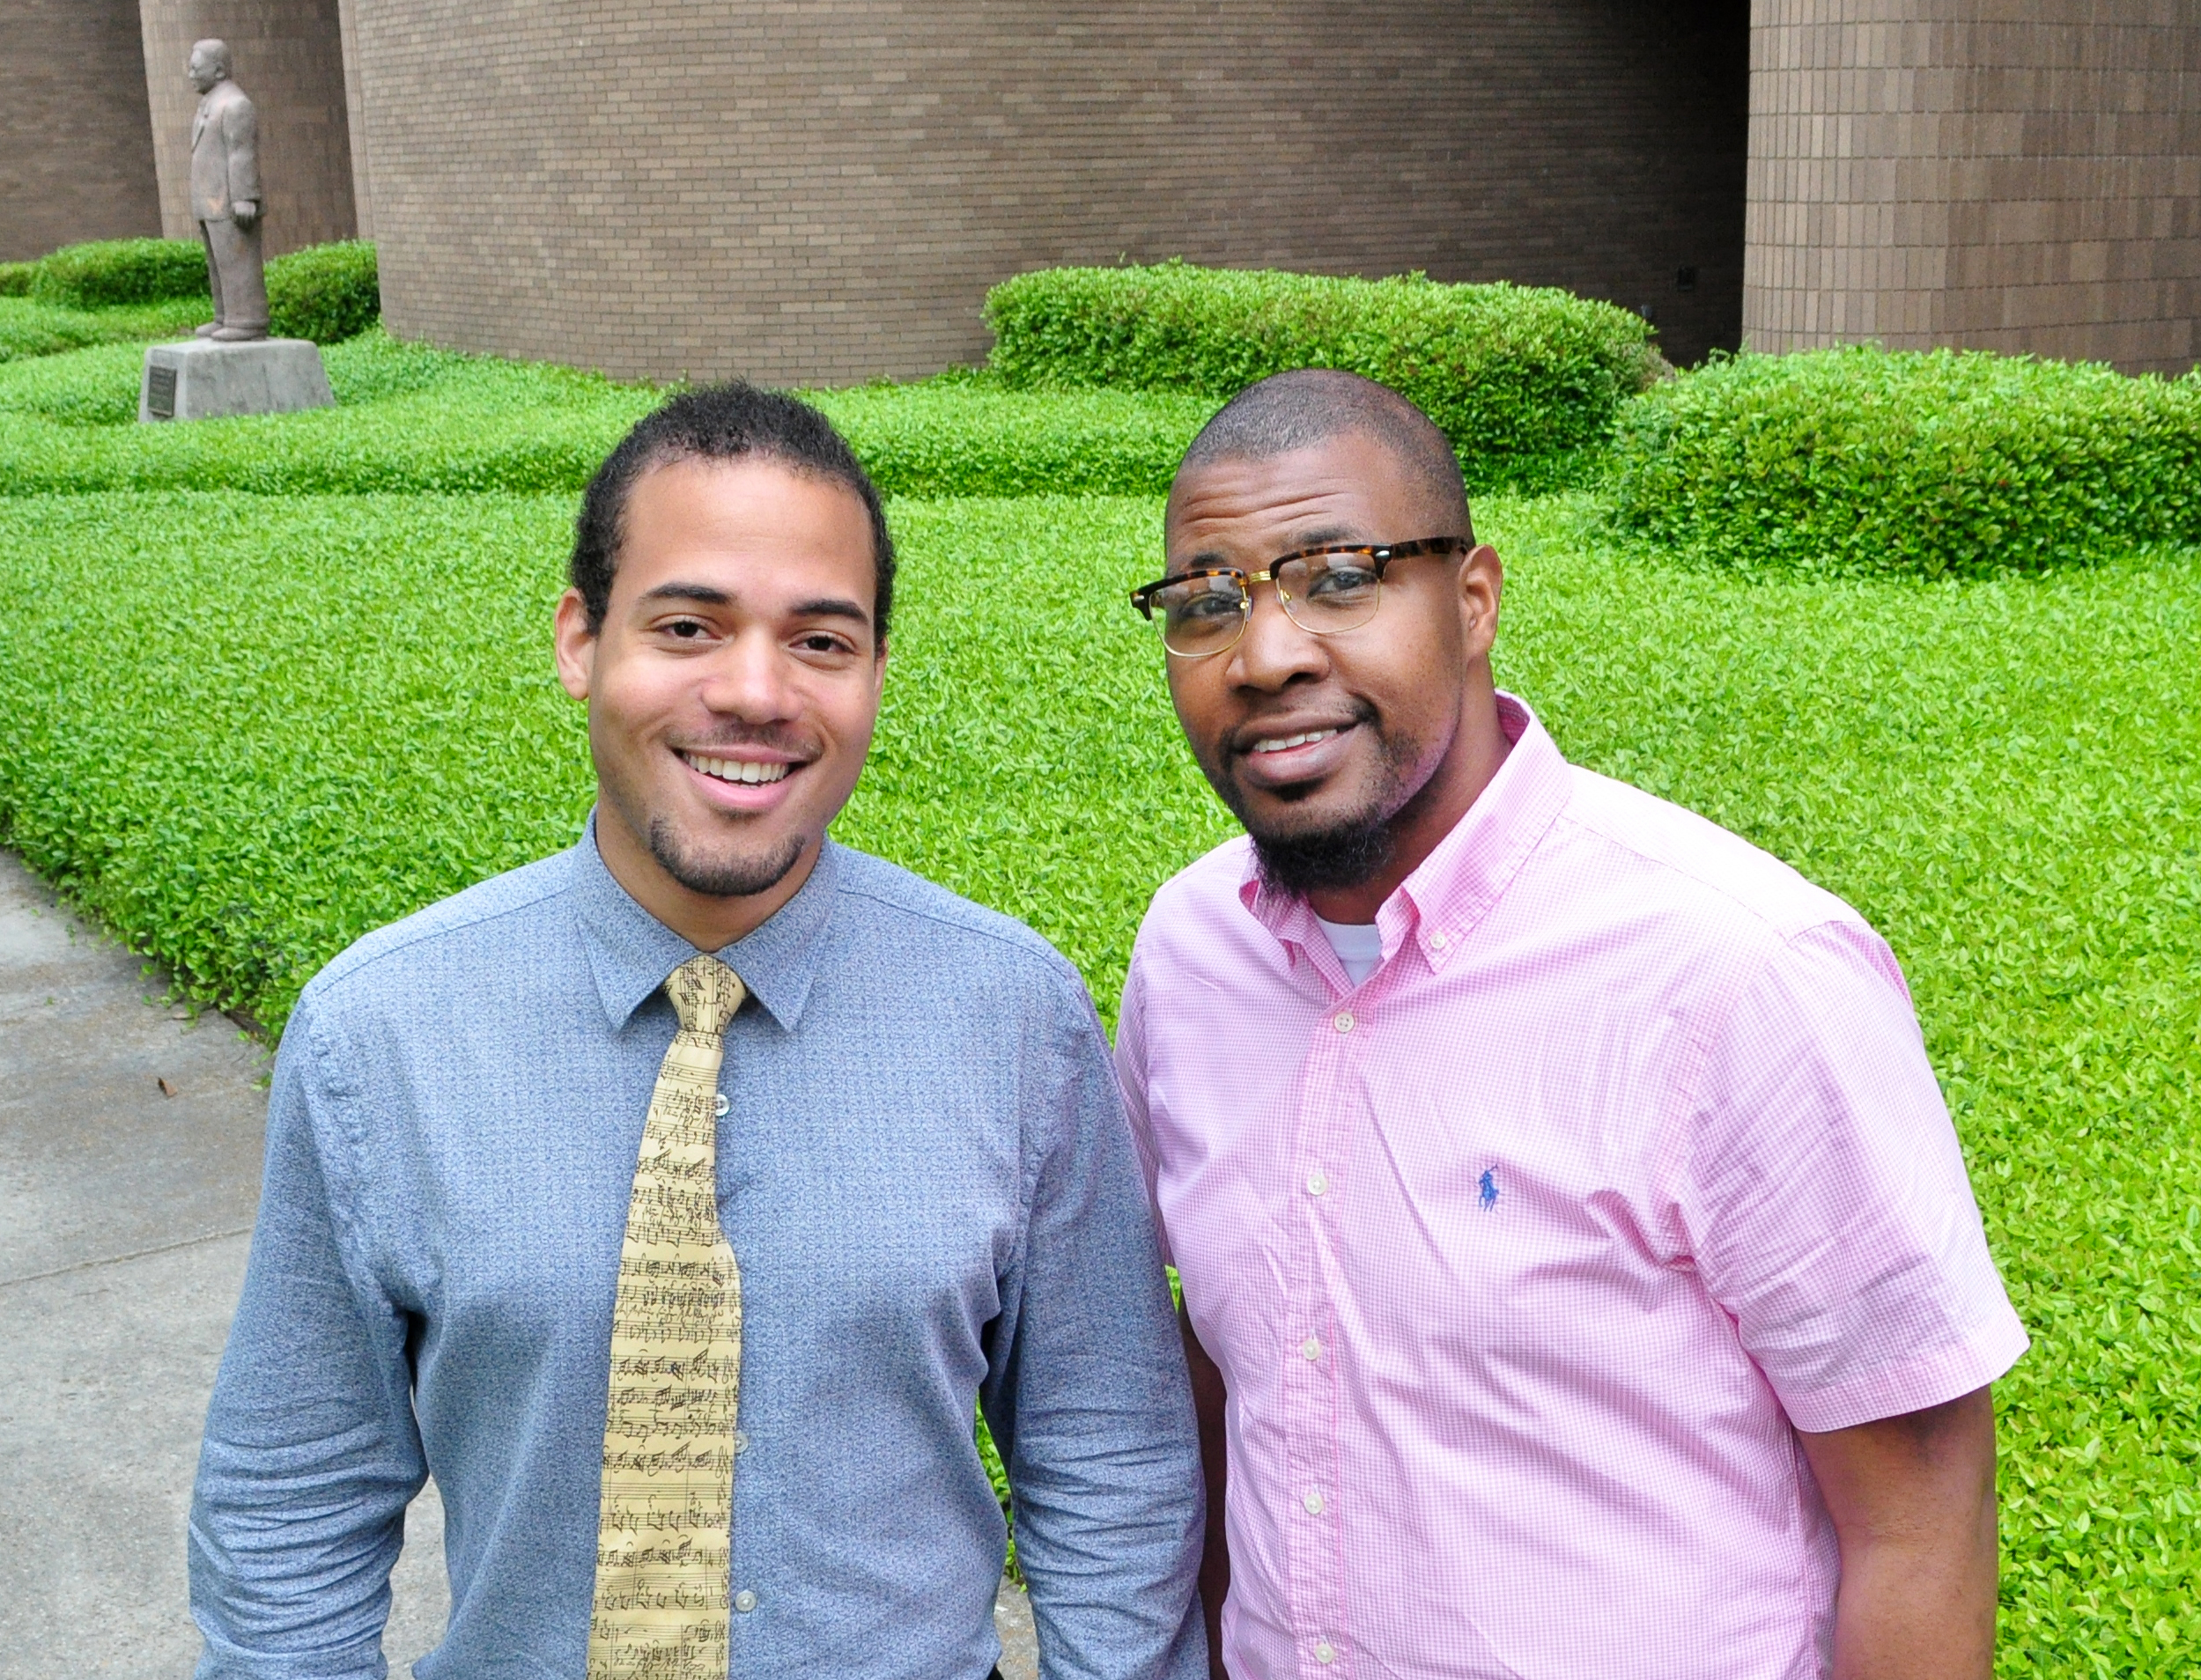 SUBR students Joshua Staes (left) and Arthur Gremillion won the Regional National Association of Negro Musicians Scholarship Auditions in voice, April 8-9, 2-16, in Dallas, Texas.